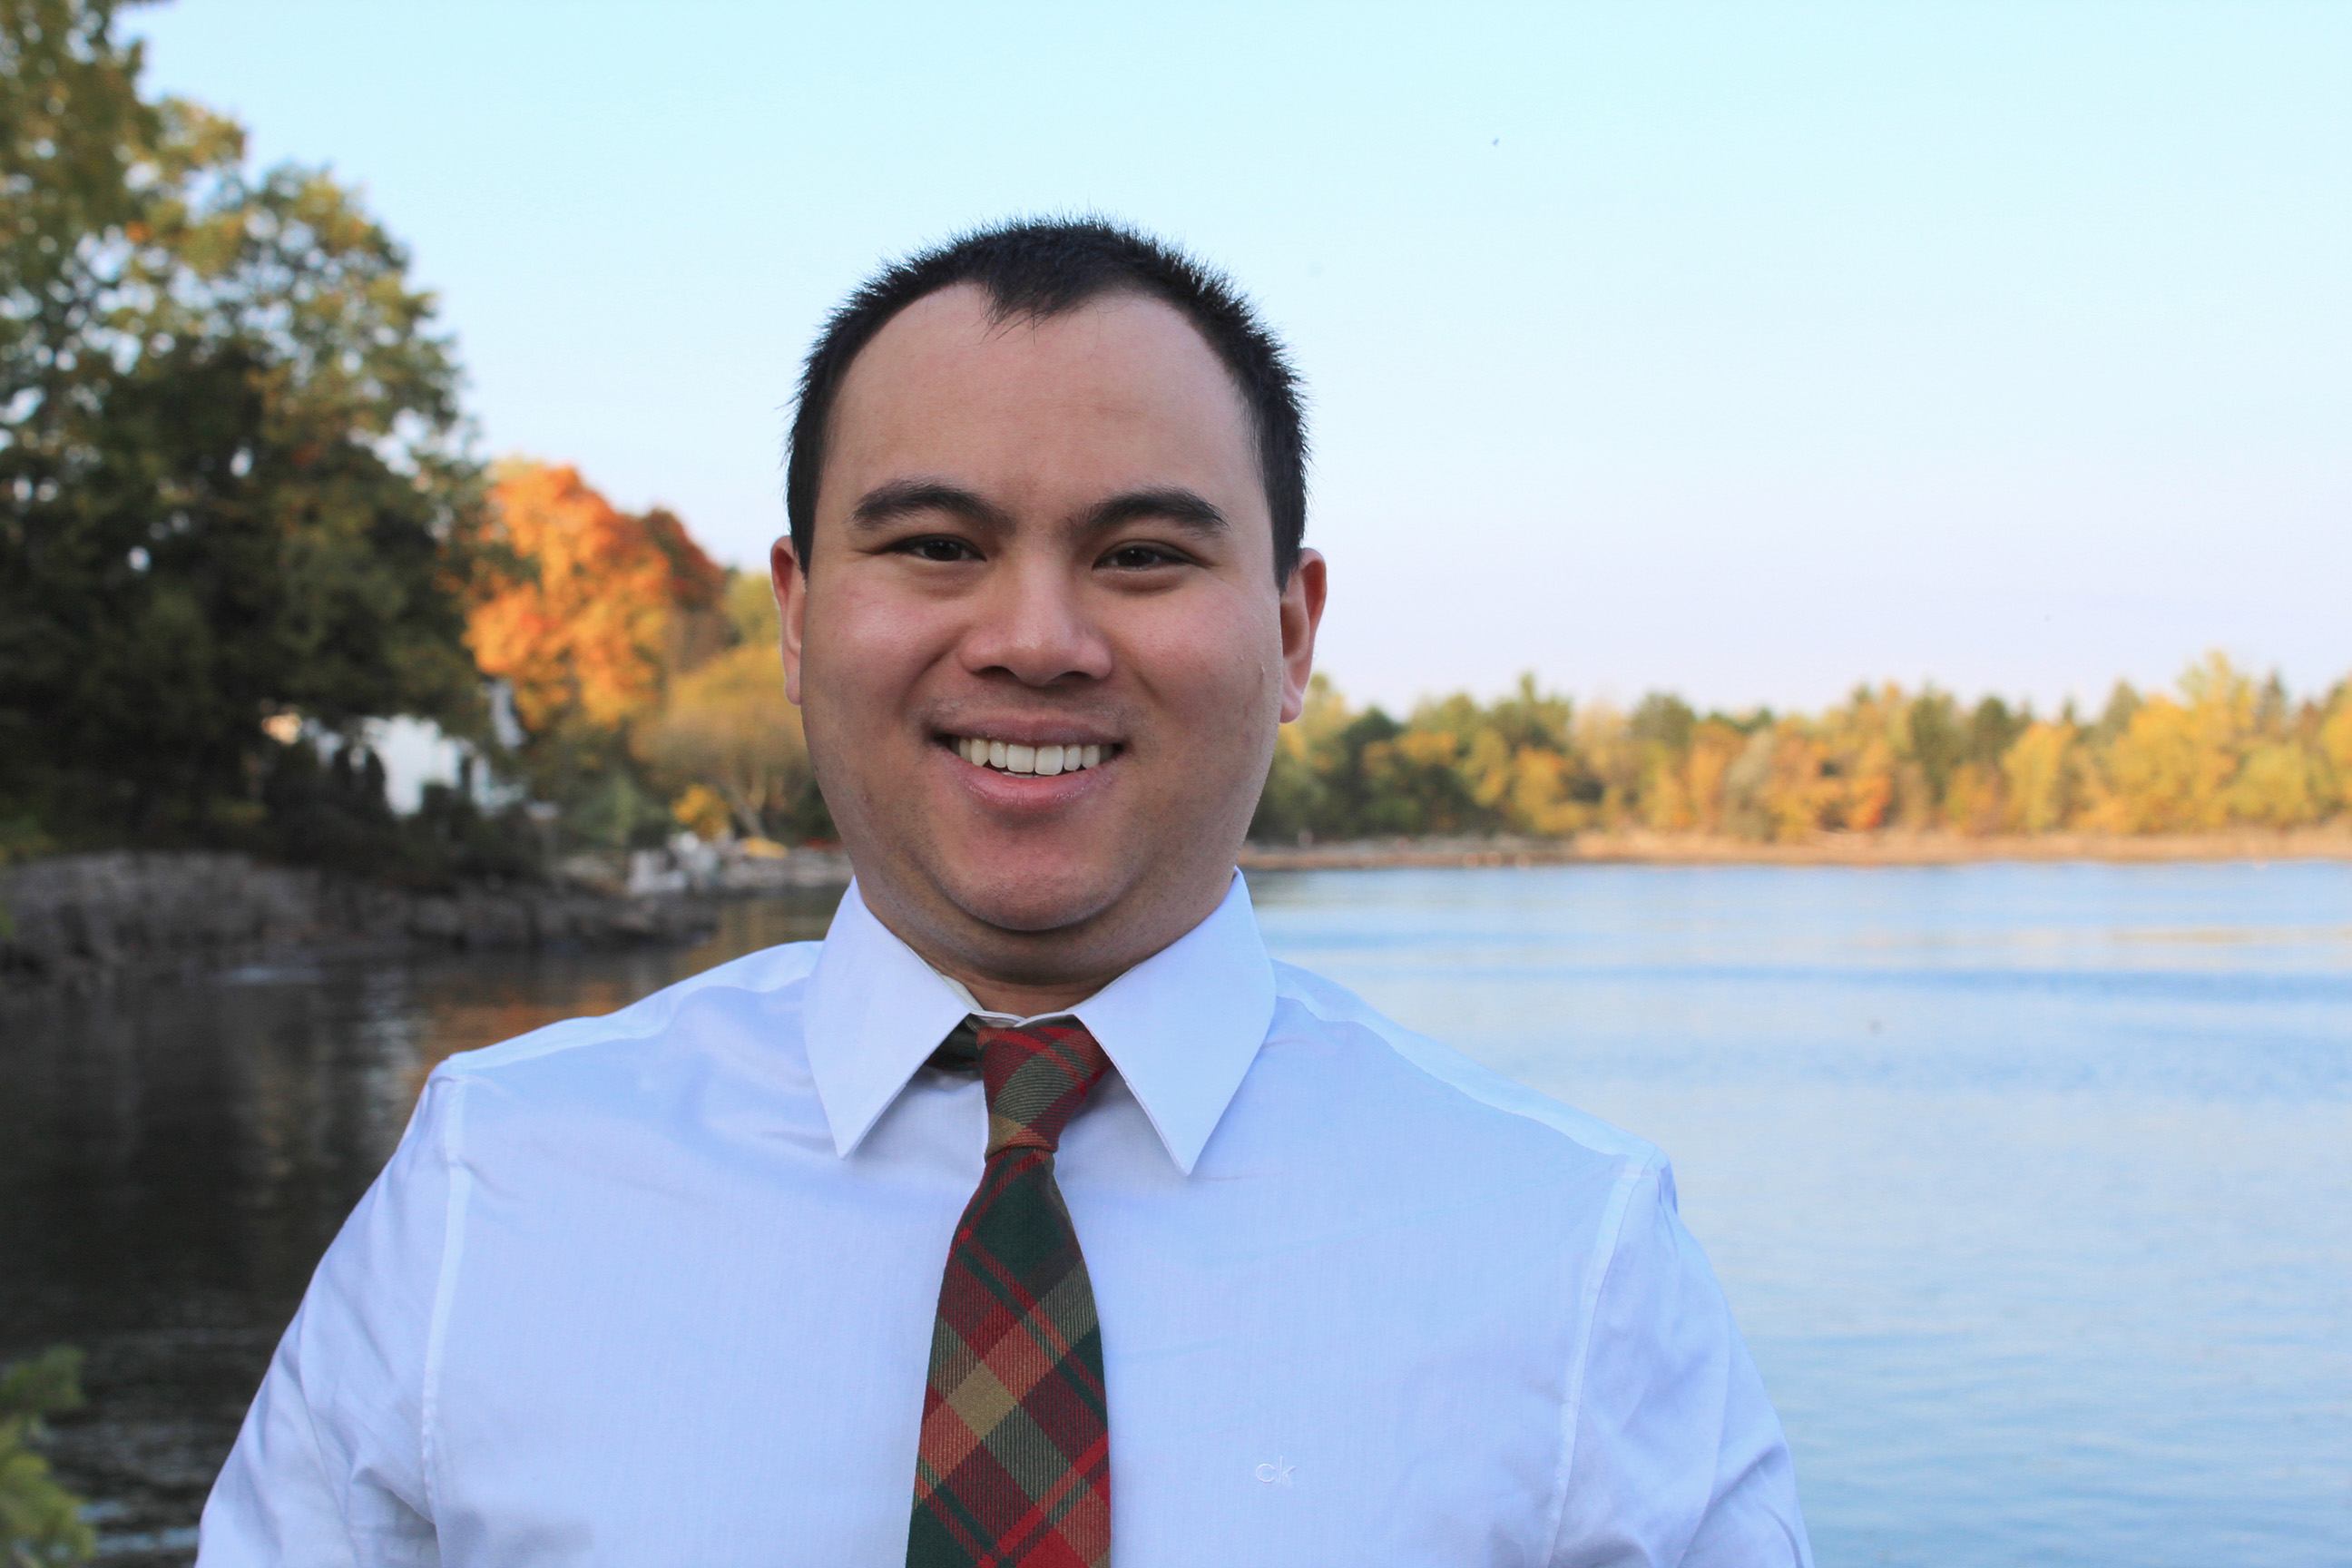 PR student Mathias Ho smiles, wearing a white shirt and red tie. There is a lake surrounded by colorful trees in the background